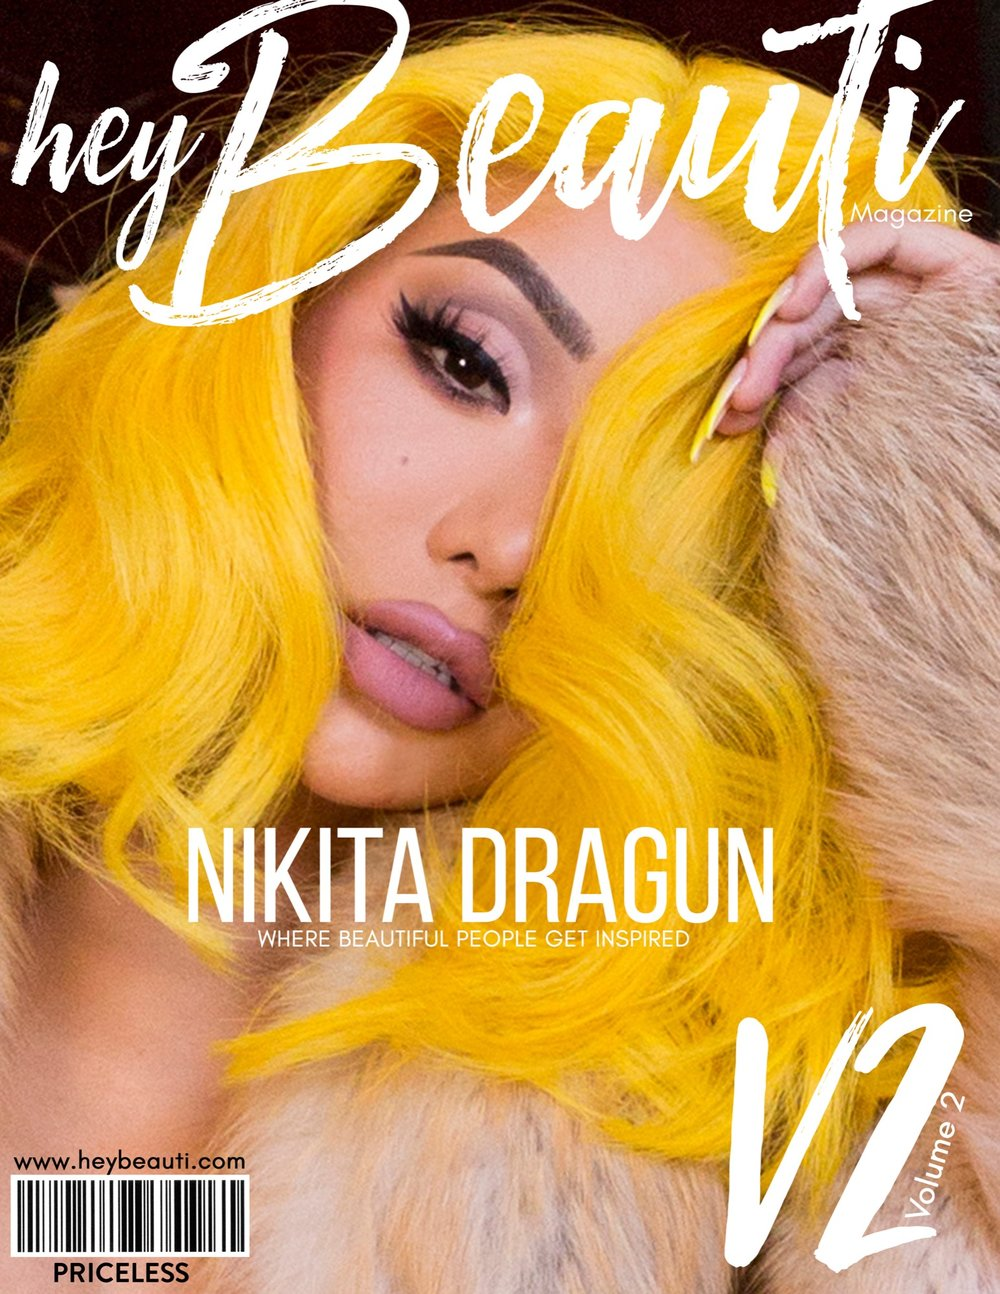 NIKIT-DRAGUN-COVER-GIRL-4 copy.jpg